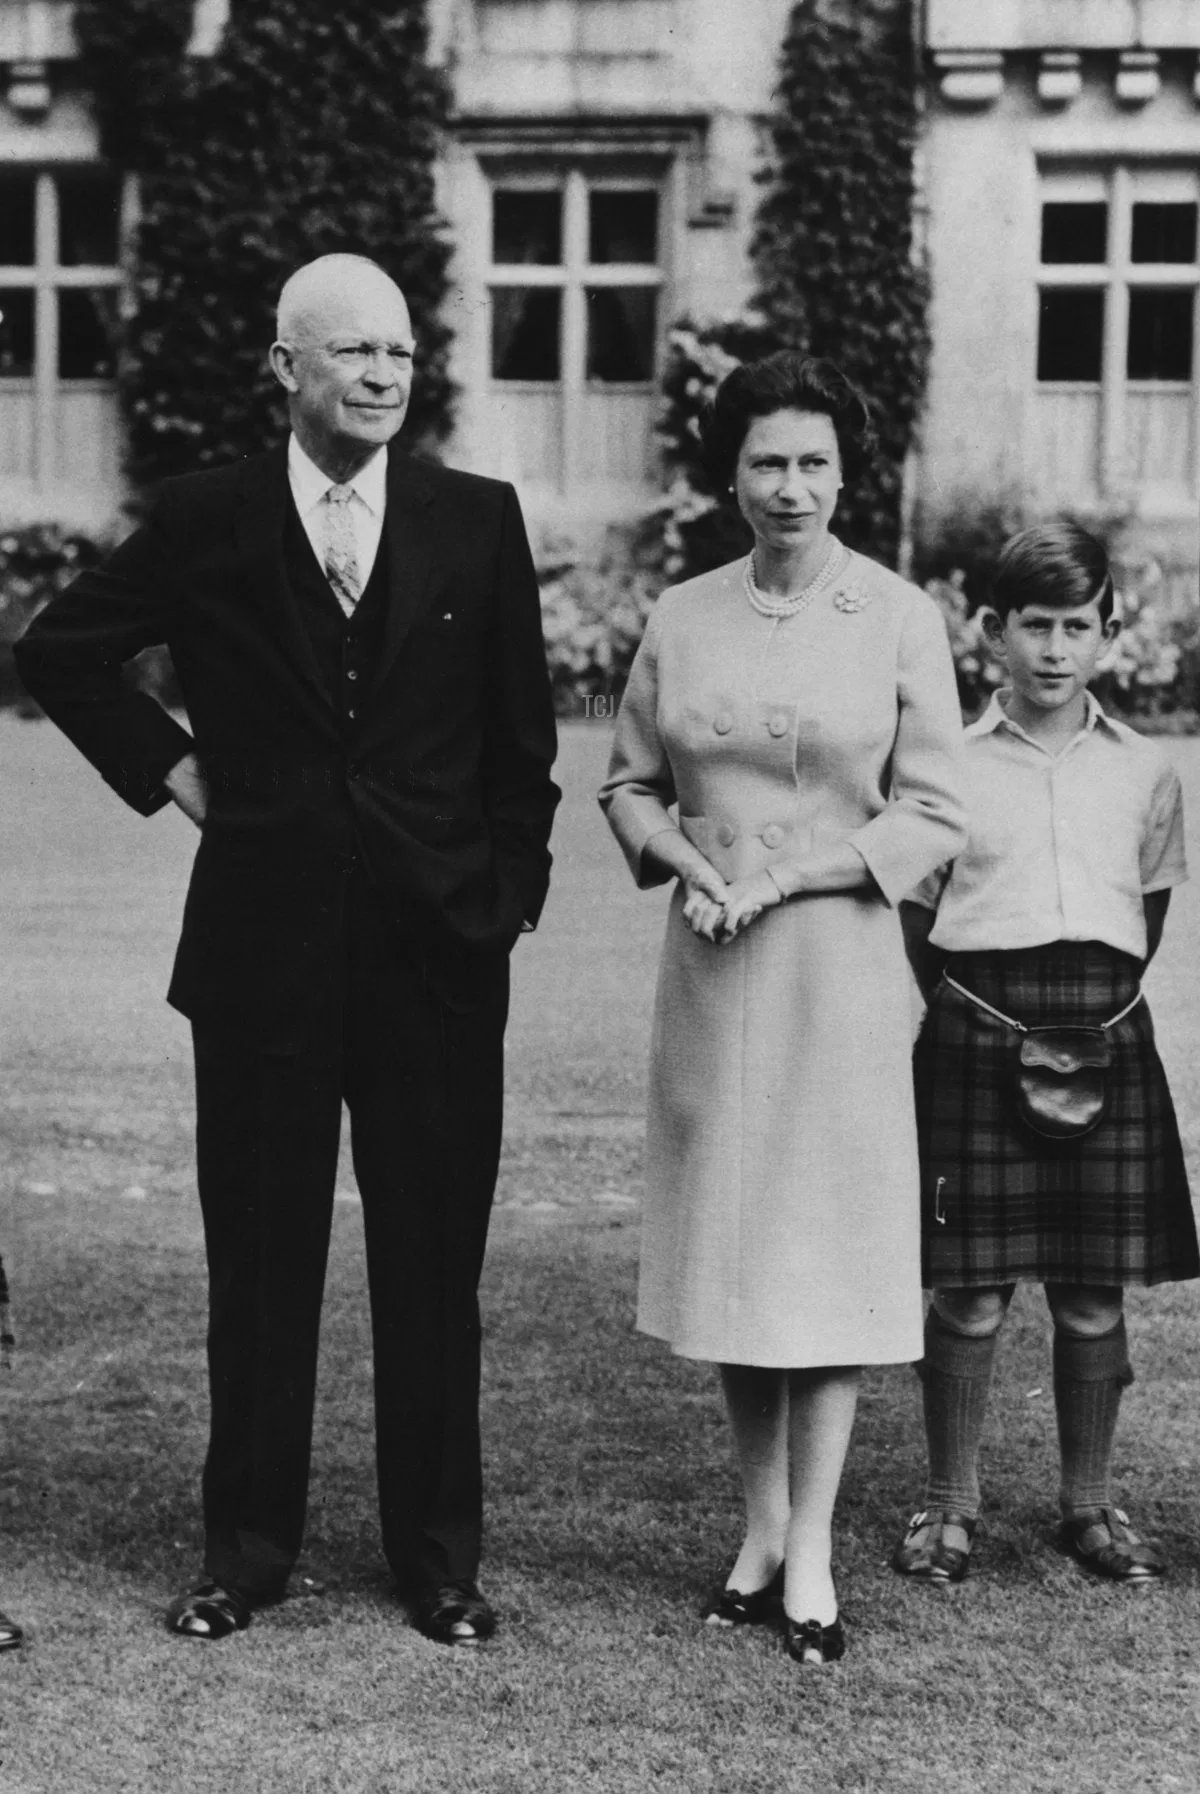 President Eisenhower (centre) with the British Royal family (L-R) Prince Philip, Princess Anne, HM Queen Elizabeth, Prince Charles and Captain John Eisenhower, at Balmoral Castle, Scotland, September 1959